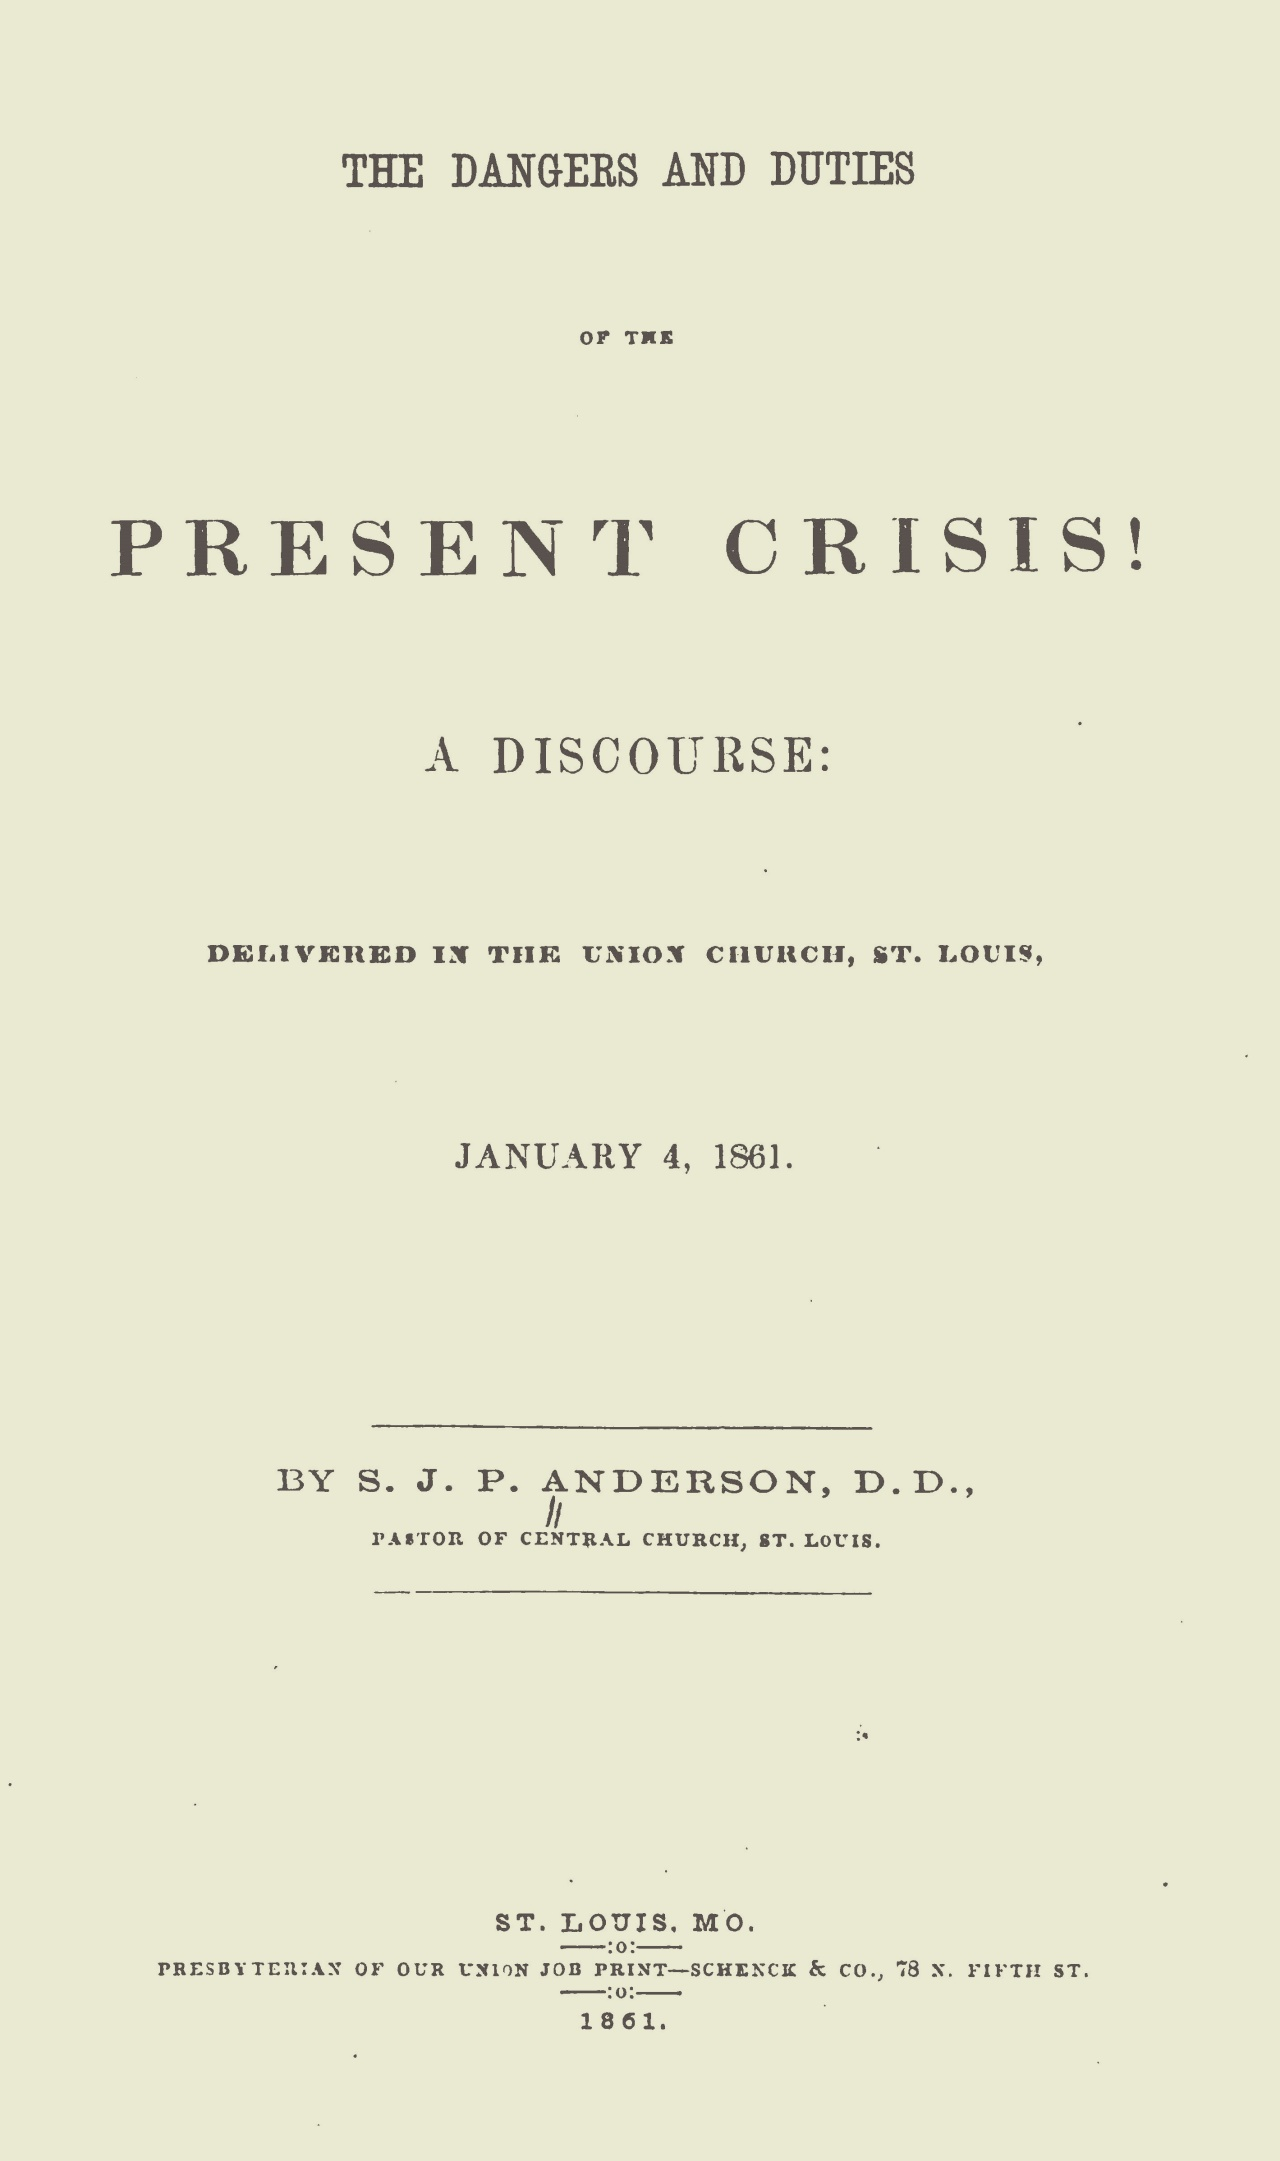 Anderson, Samuel James Pierce, The Dangers and Duties of the Present Crisis Title Page.jpg